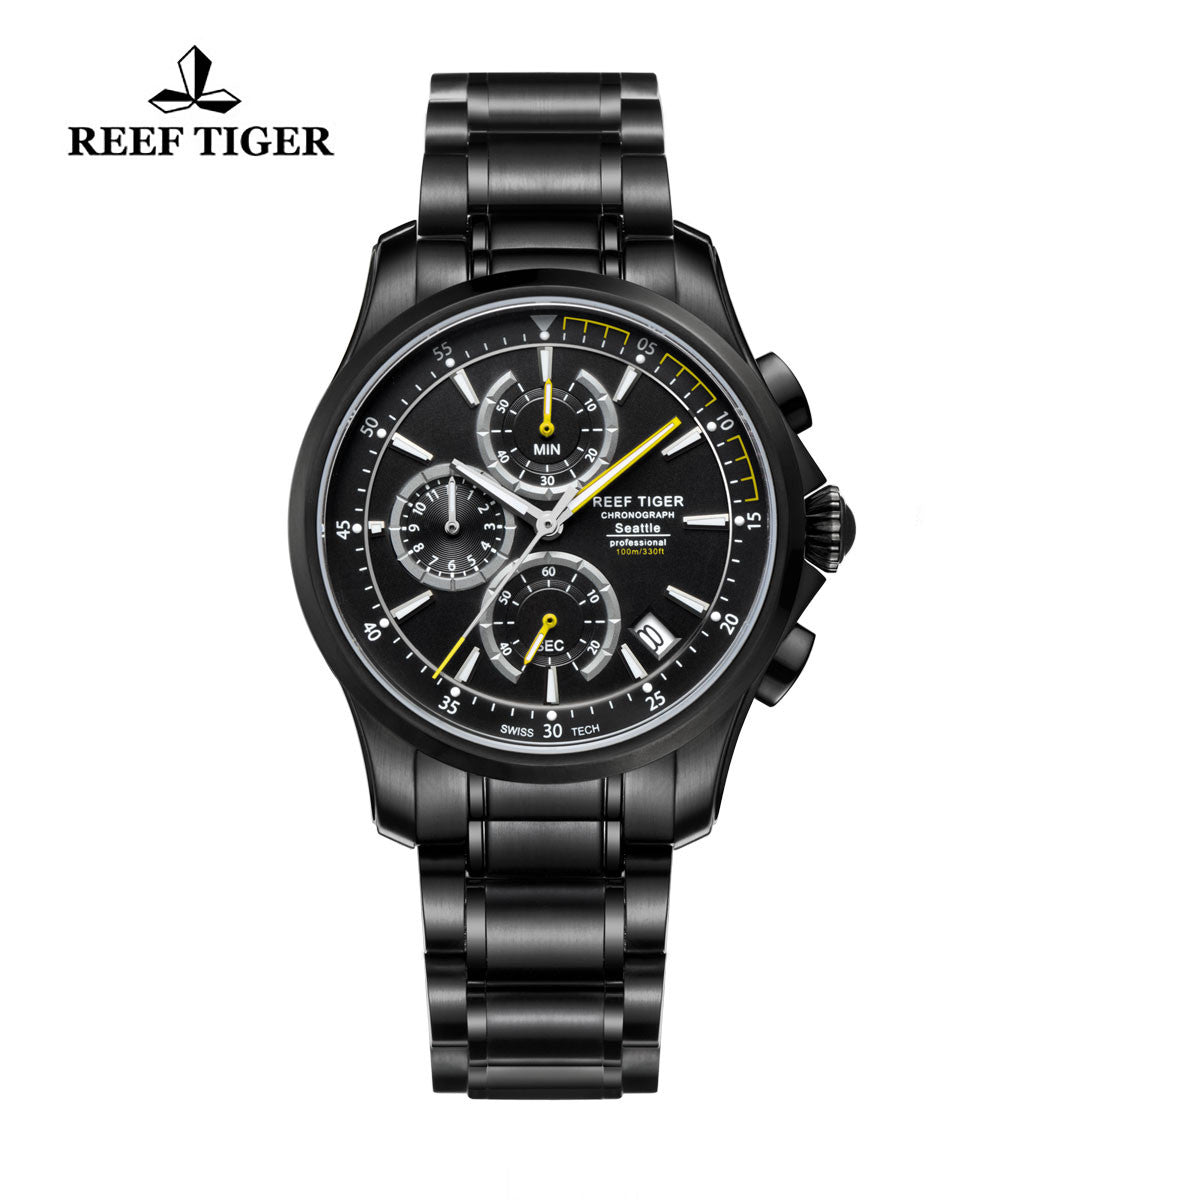 Reef Tiger Chronograph Date Black Steel Yellow Hands Quartz Watches RGA1663